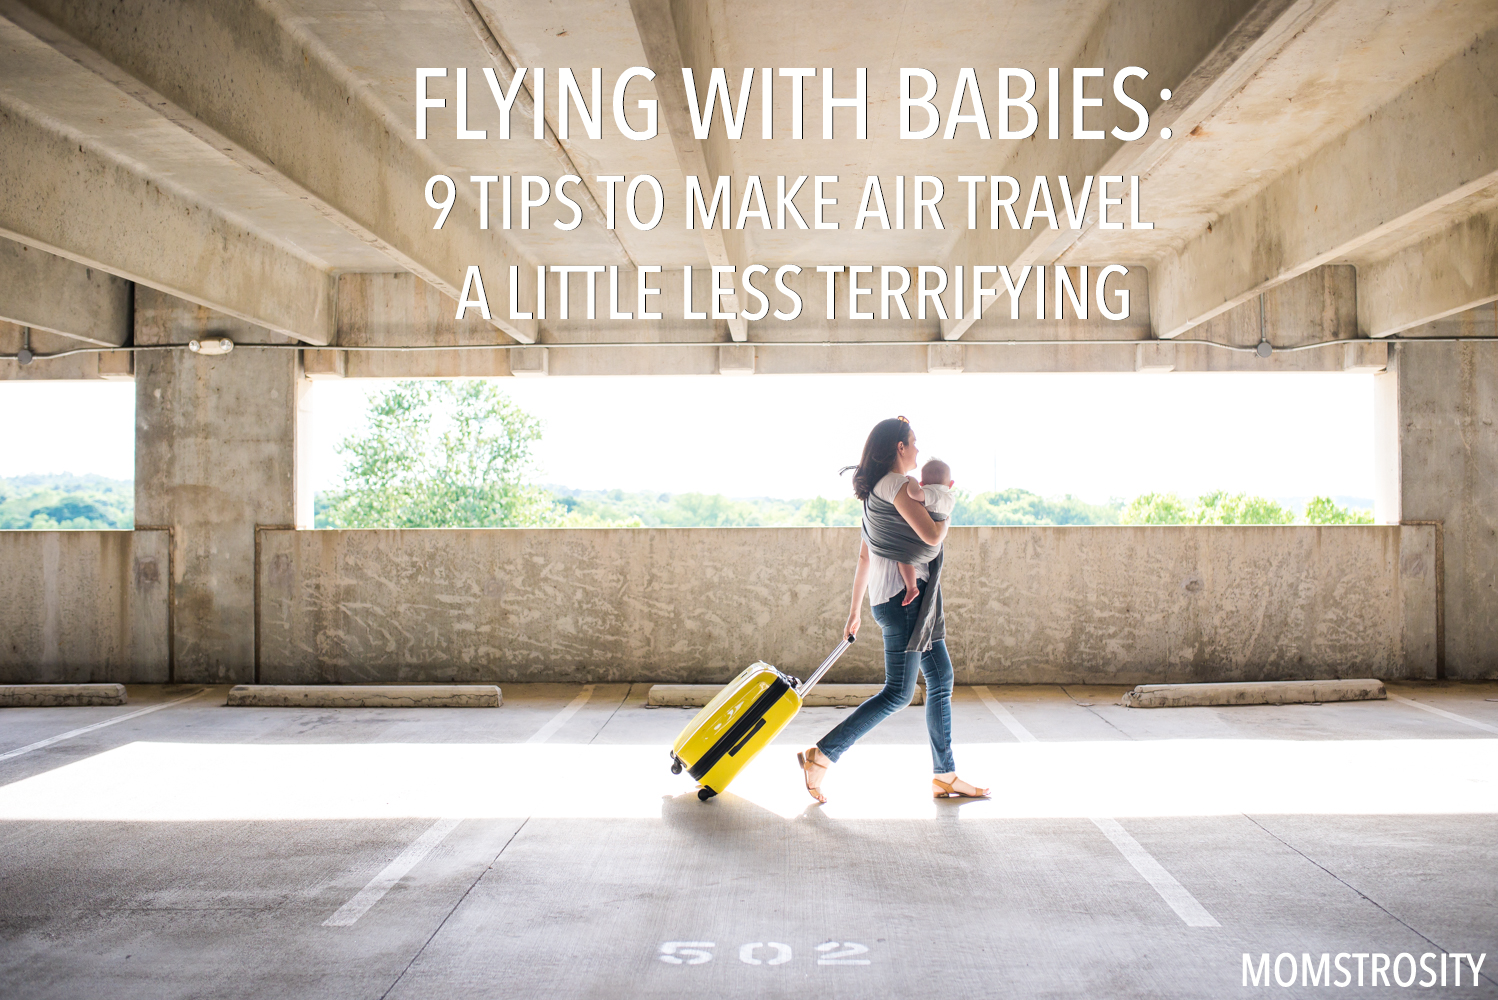 Tips-for-Flying-with-Babies-and-Twin-Babies.png